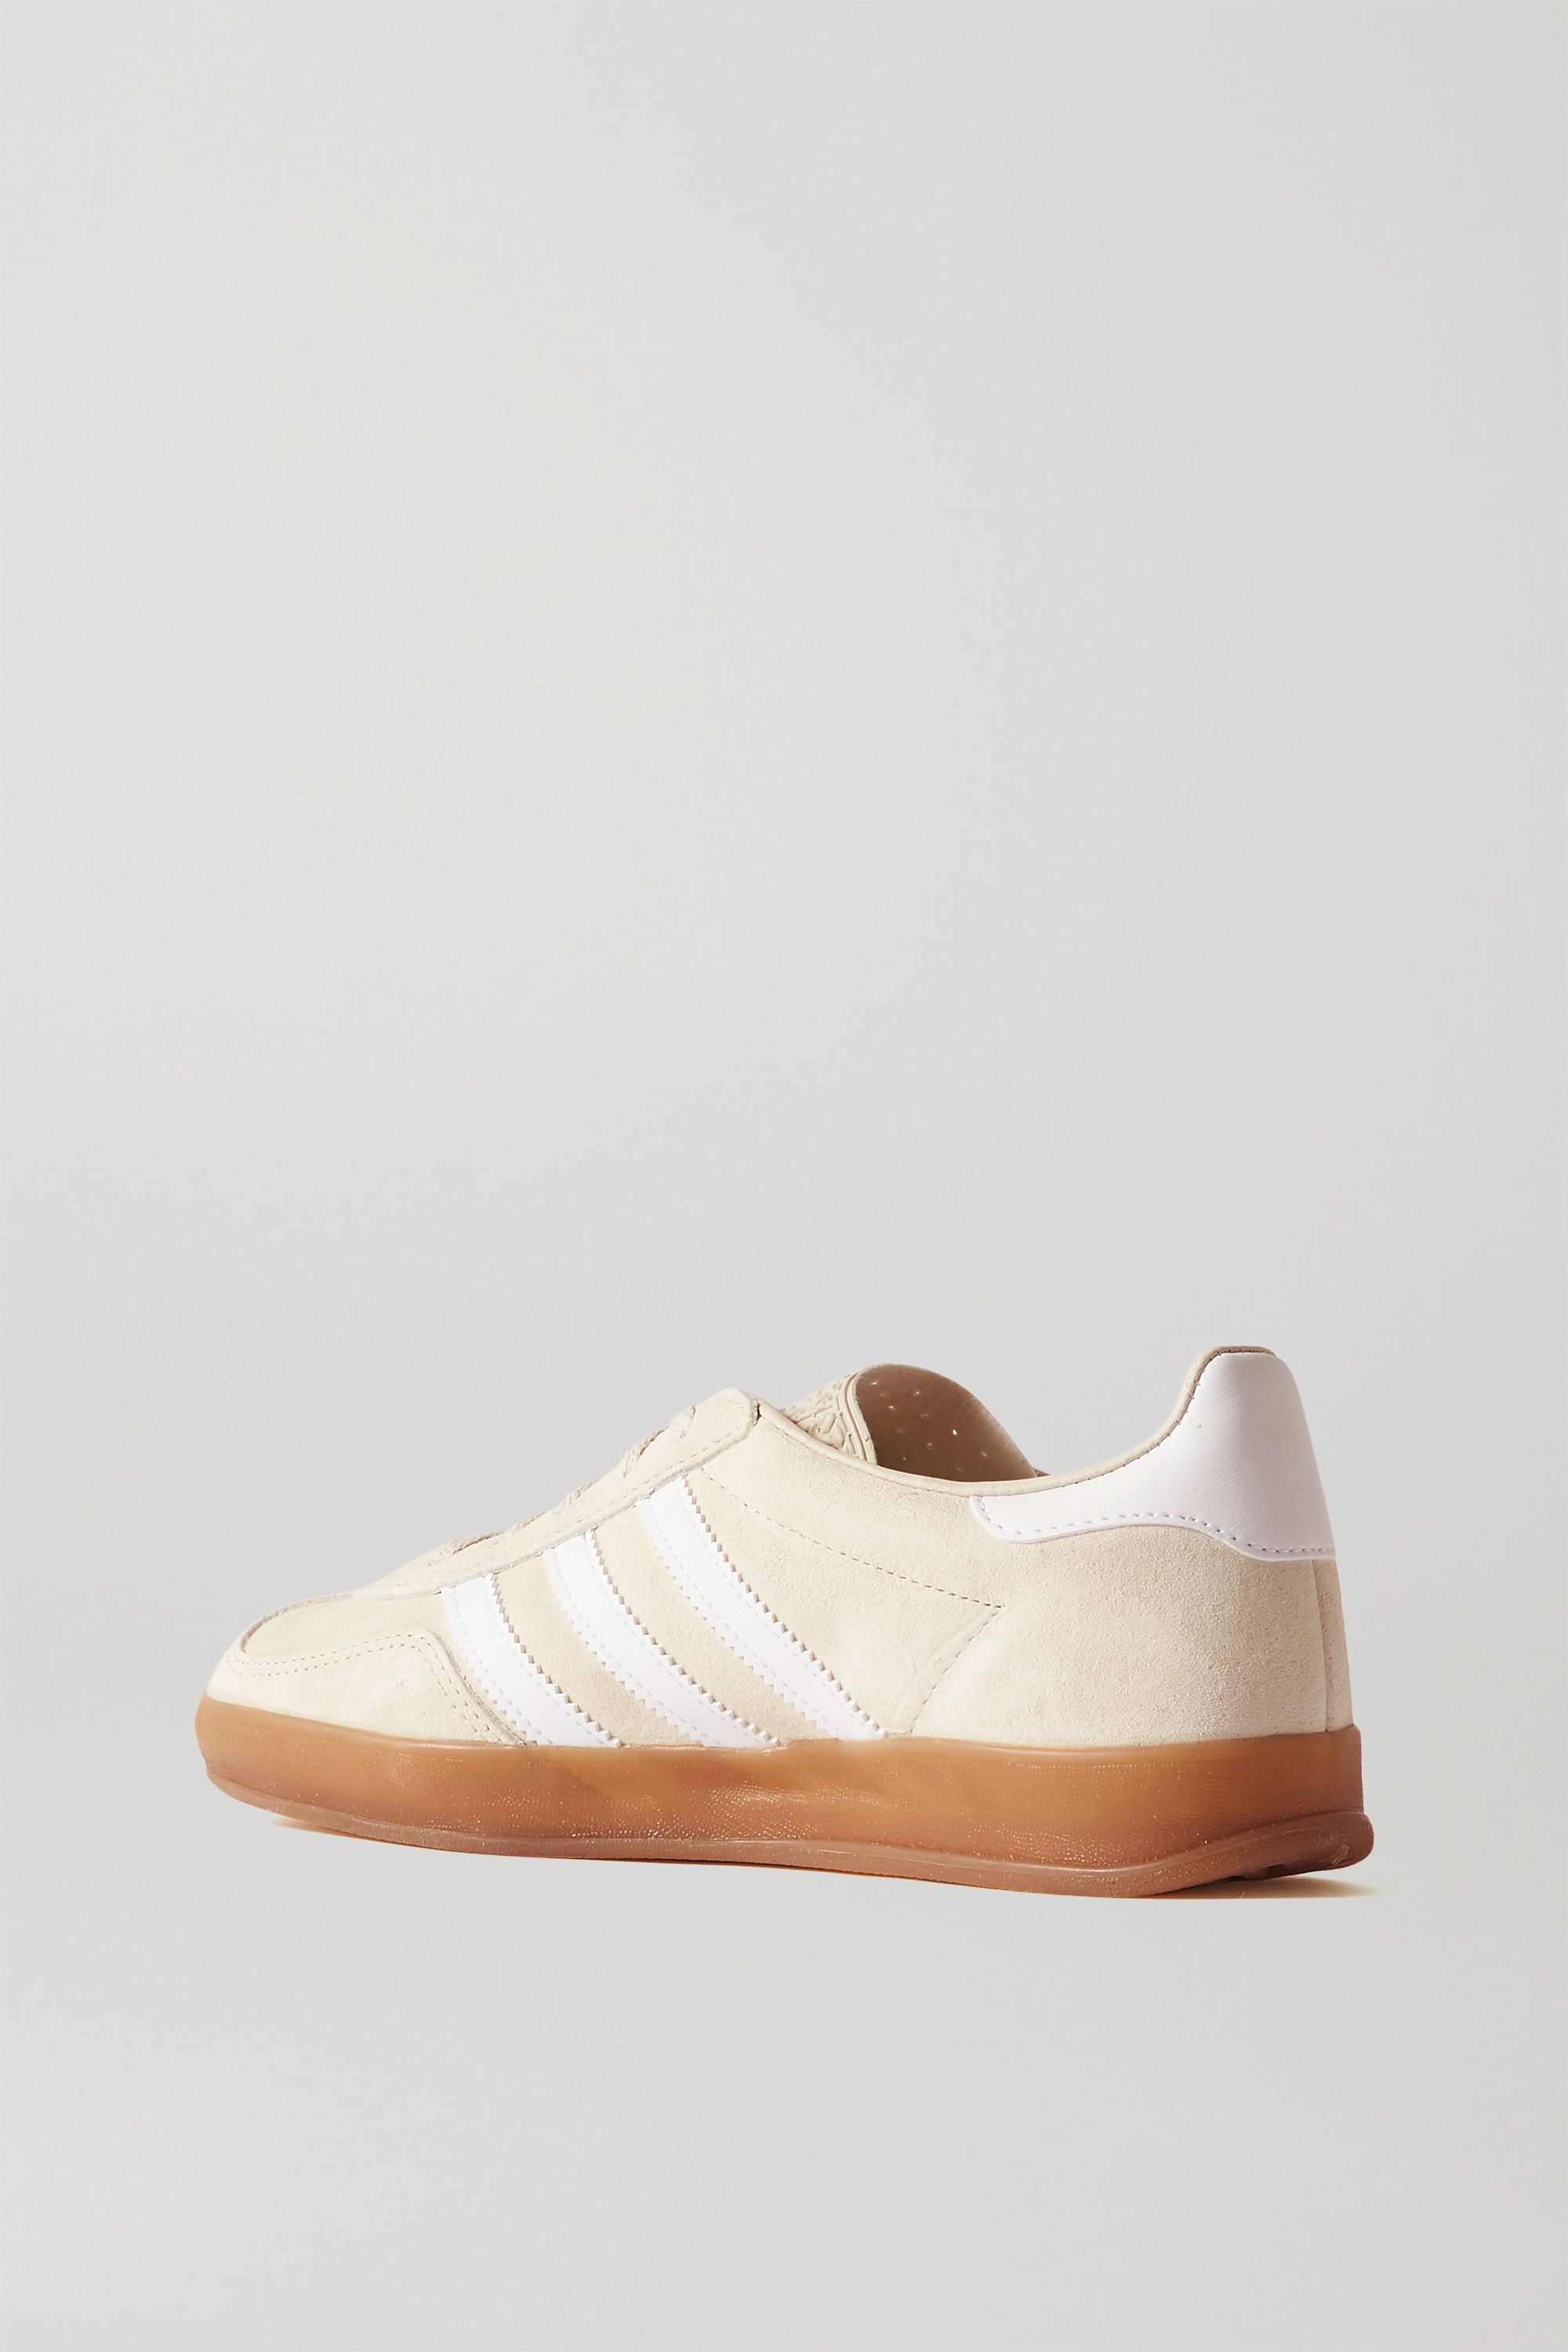 Beige Gazelle Suede And Leather Sneakers | Adidas Originals